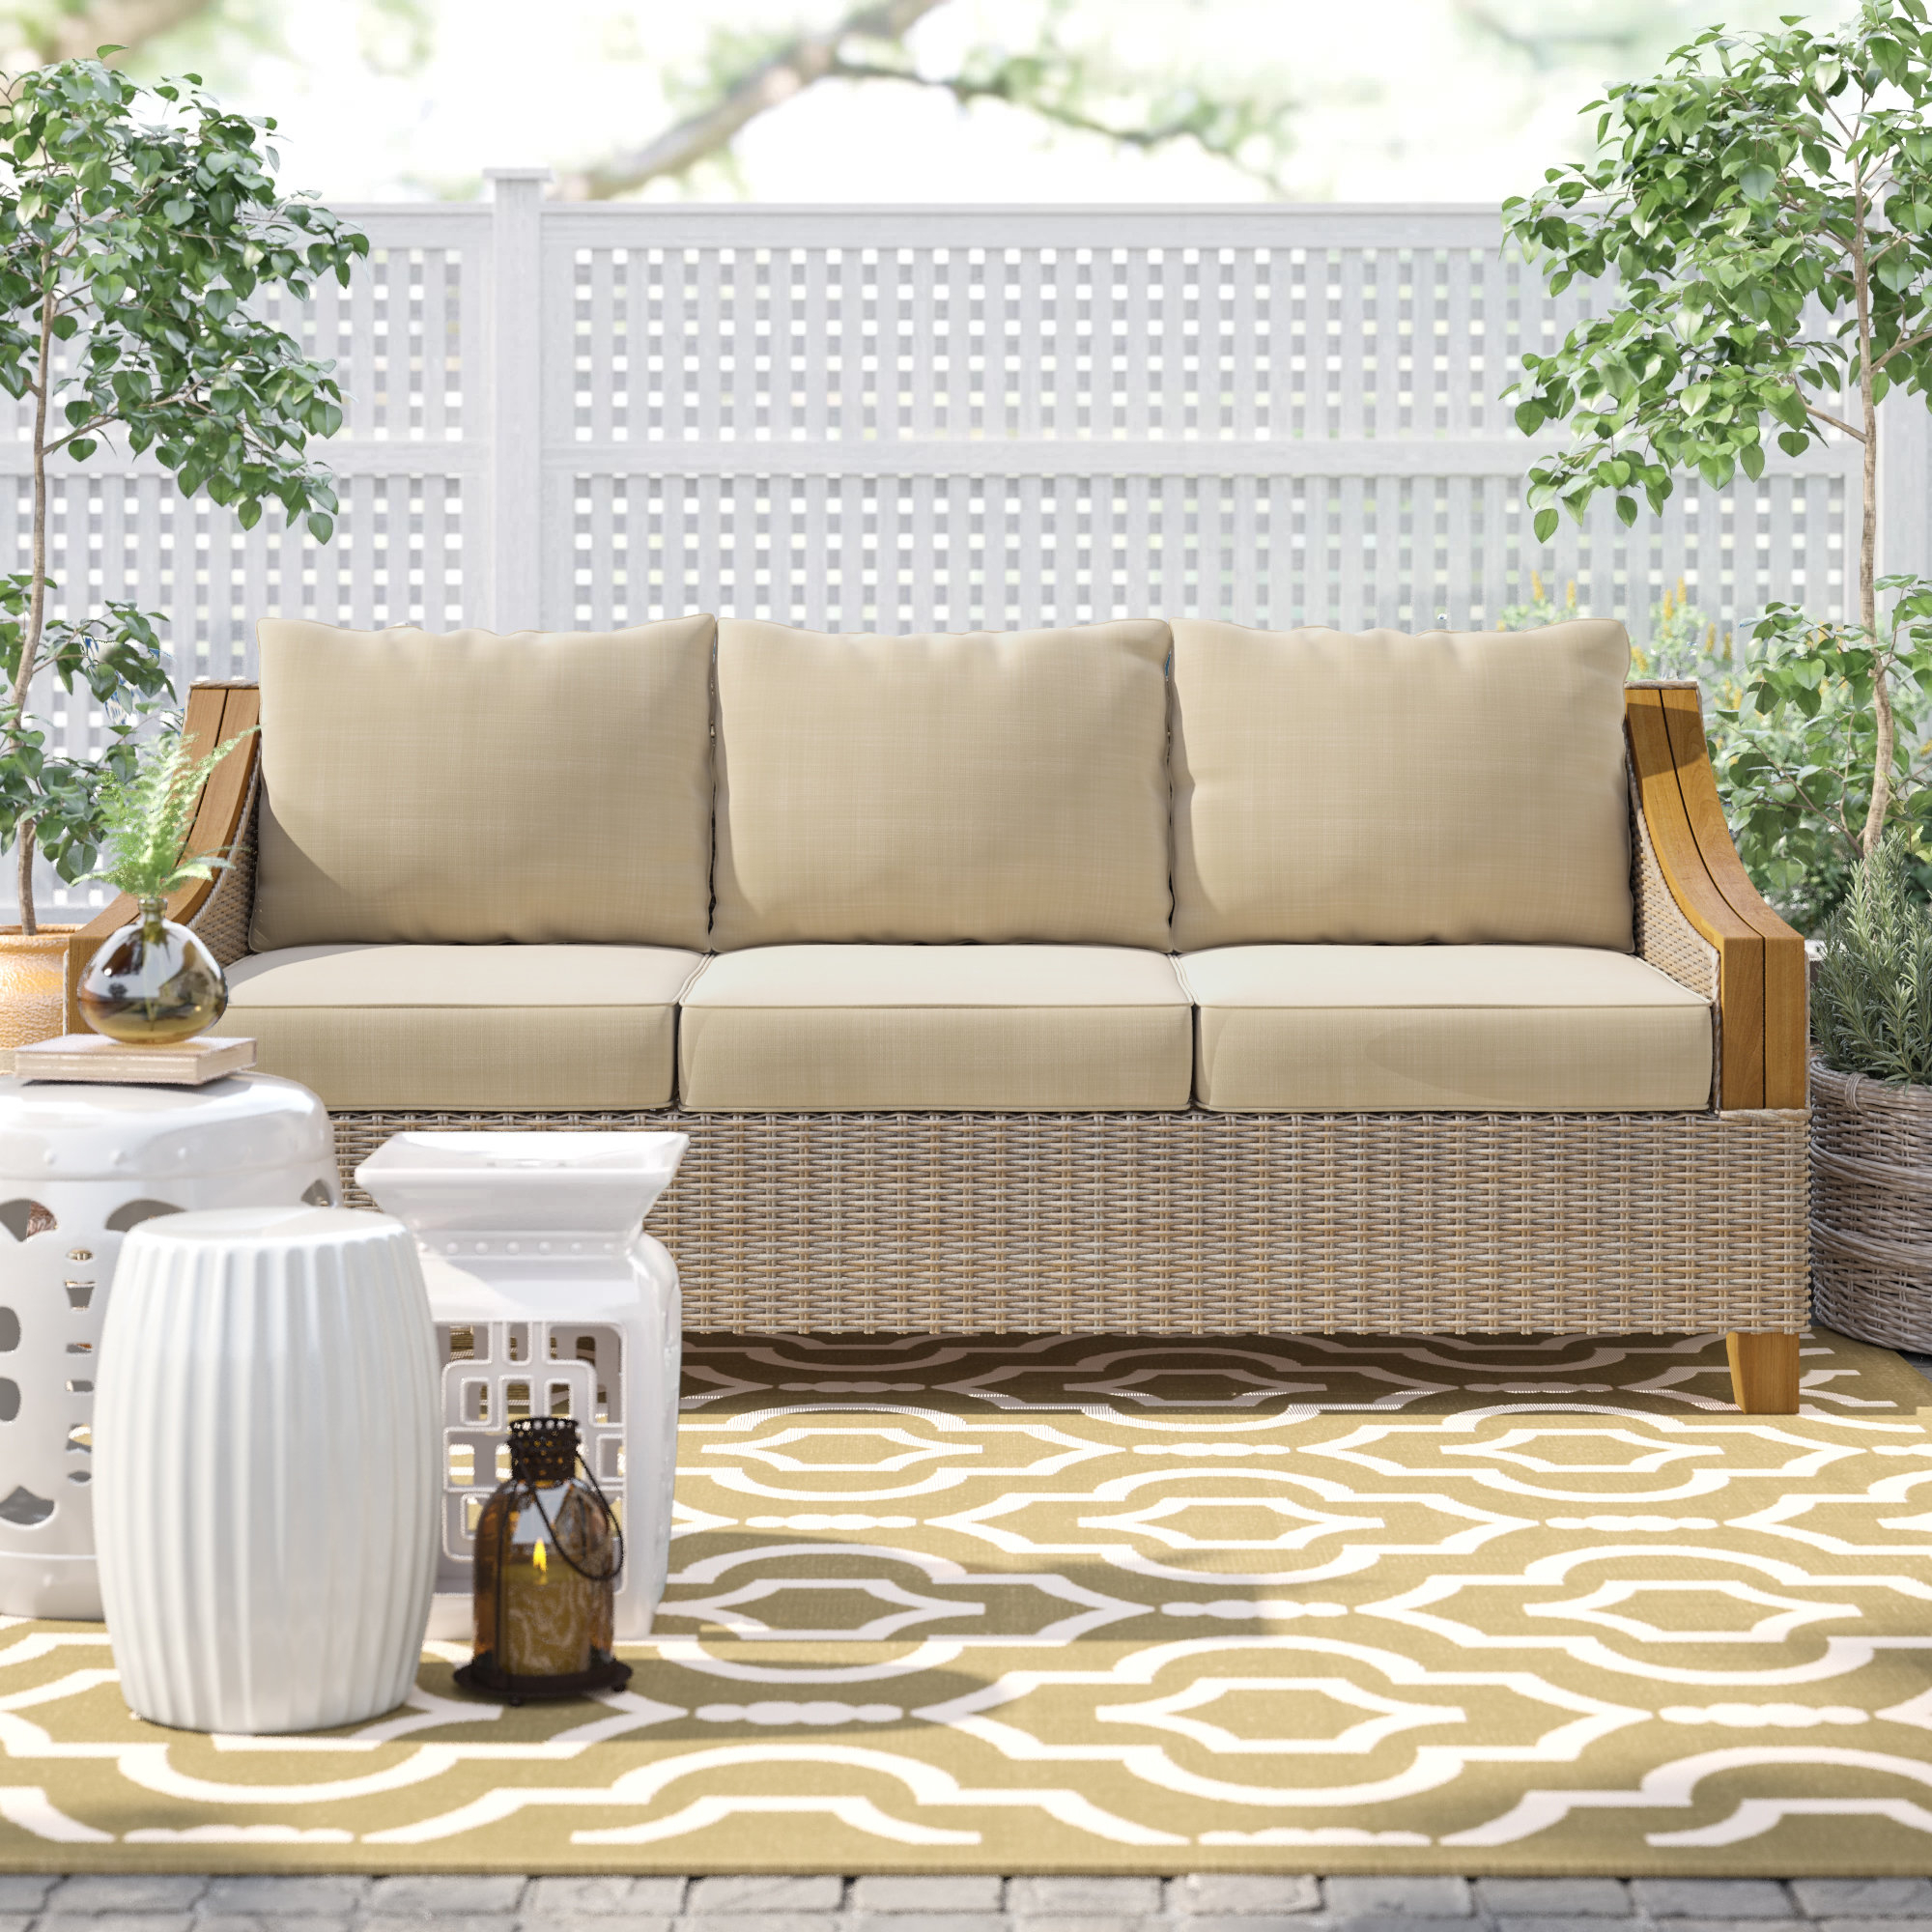 Trendy Summerton Teak Patio Sofas With Cushions Pertaining To Kincaid Teak Patio Sofa With Sunbrella Cushions (View 20 of 20)